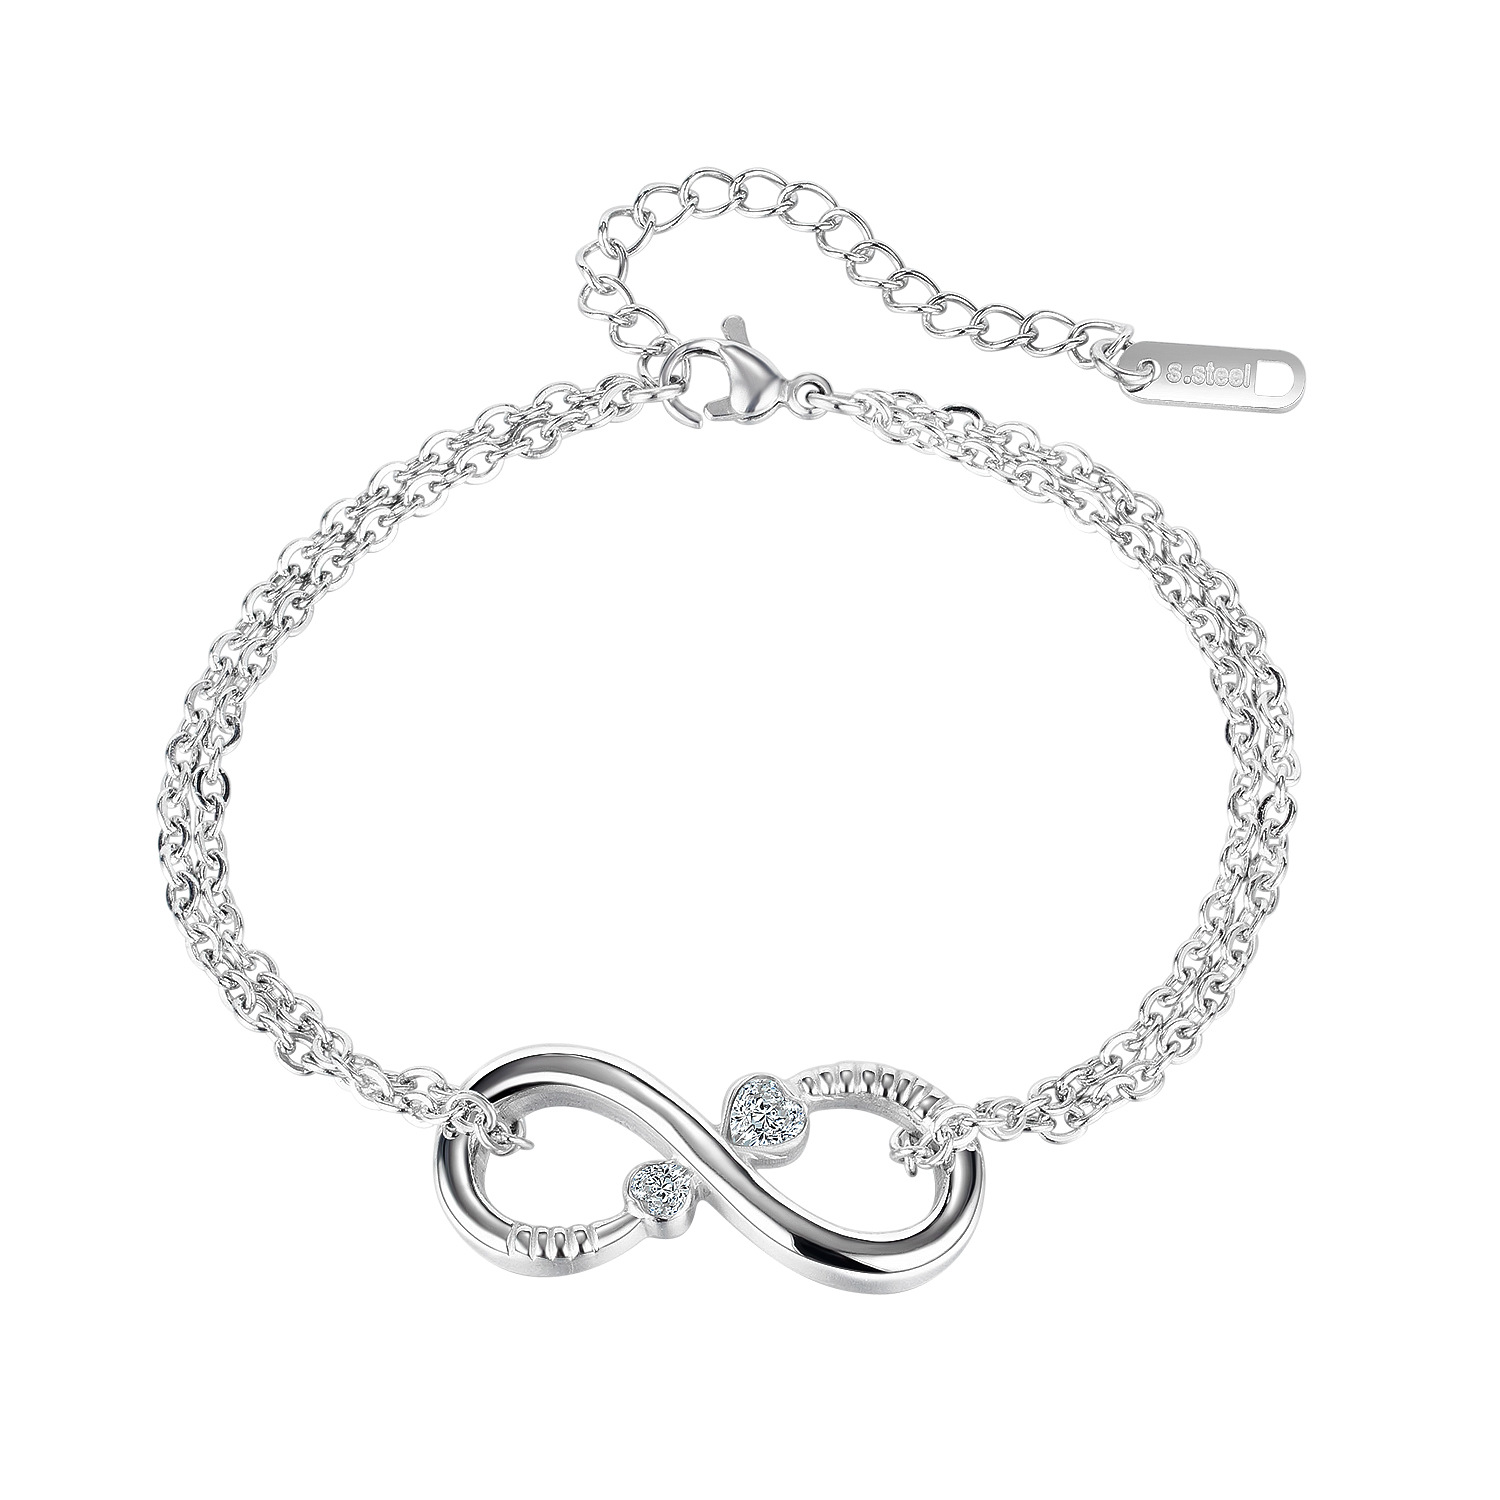 Women's Stylish And Simple 8-character Bracelet With Stainless Steel Zircon Inlaid Jewelry Women's Jewelry Women's Bracelets